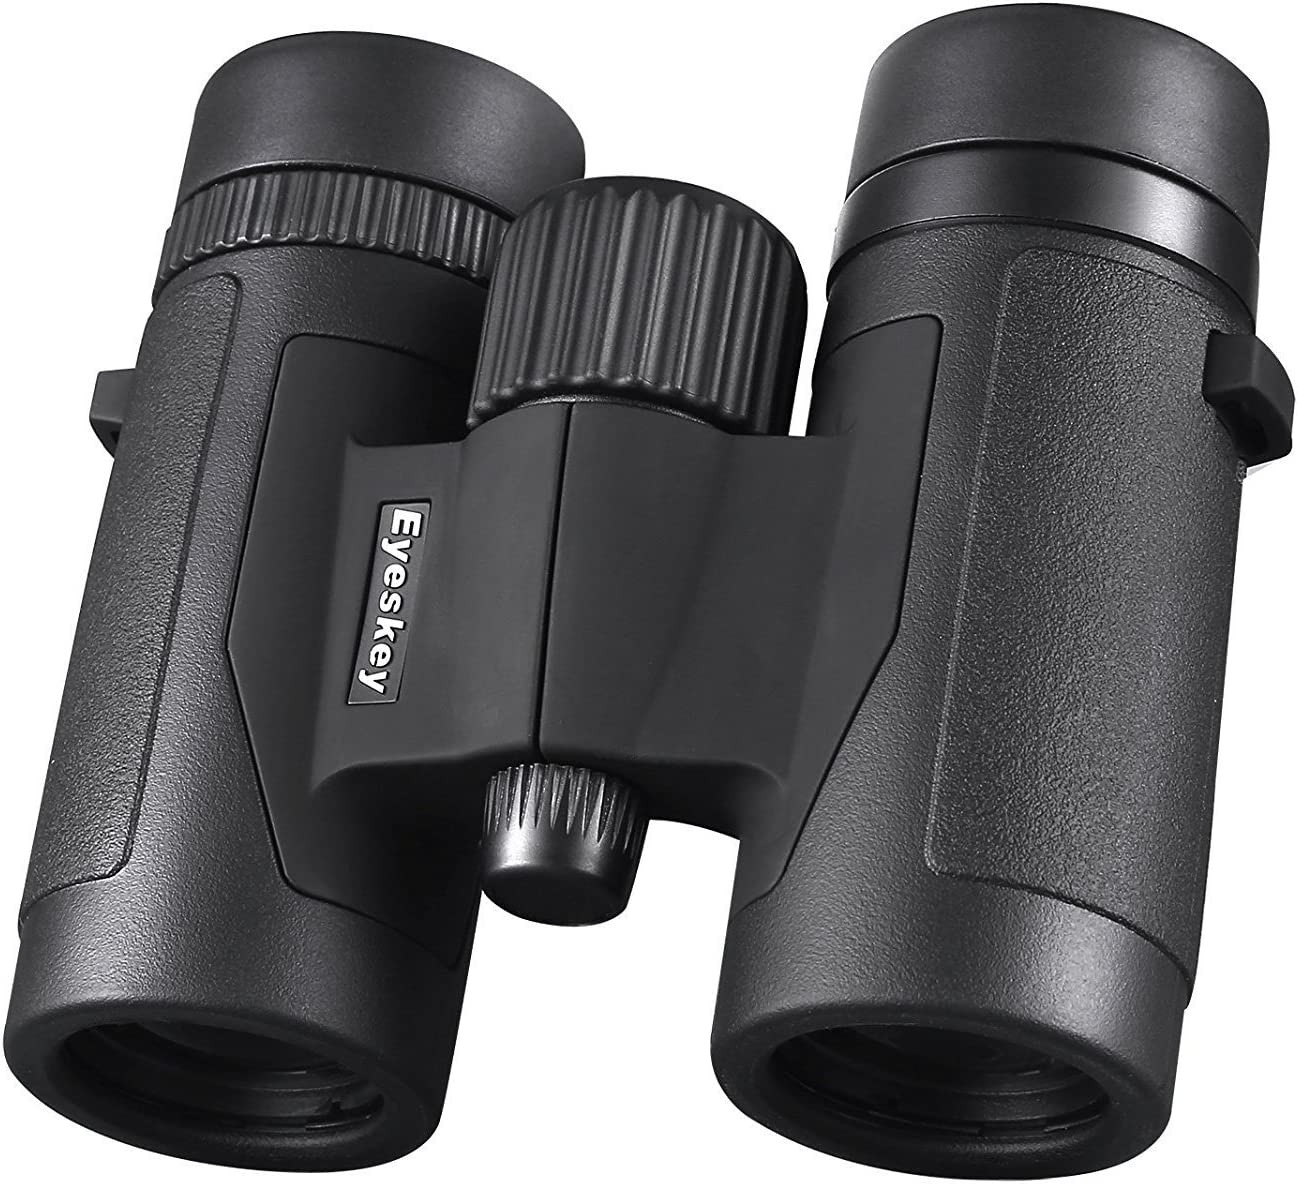 Eyeskey Compact 8X32 Travel Binoculars for Adults – HD Bak-4 Roof Prism Binos with FMC Lens – Waterproof and Fog-Proof – Crystal Images for Hunting Wildlife Watching